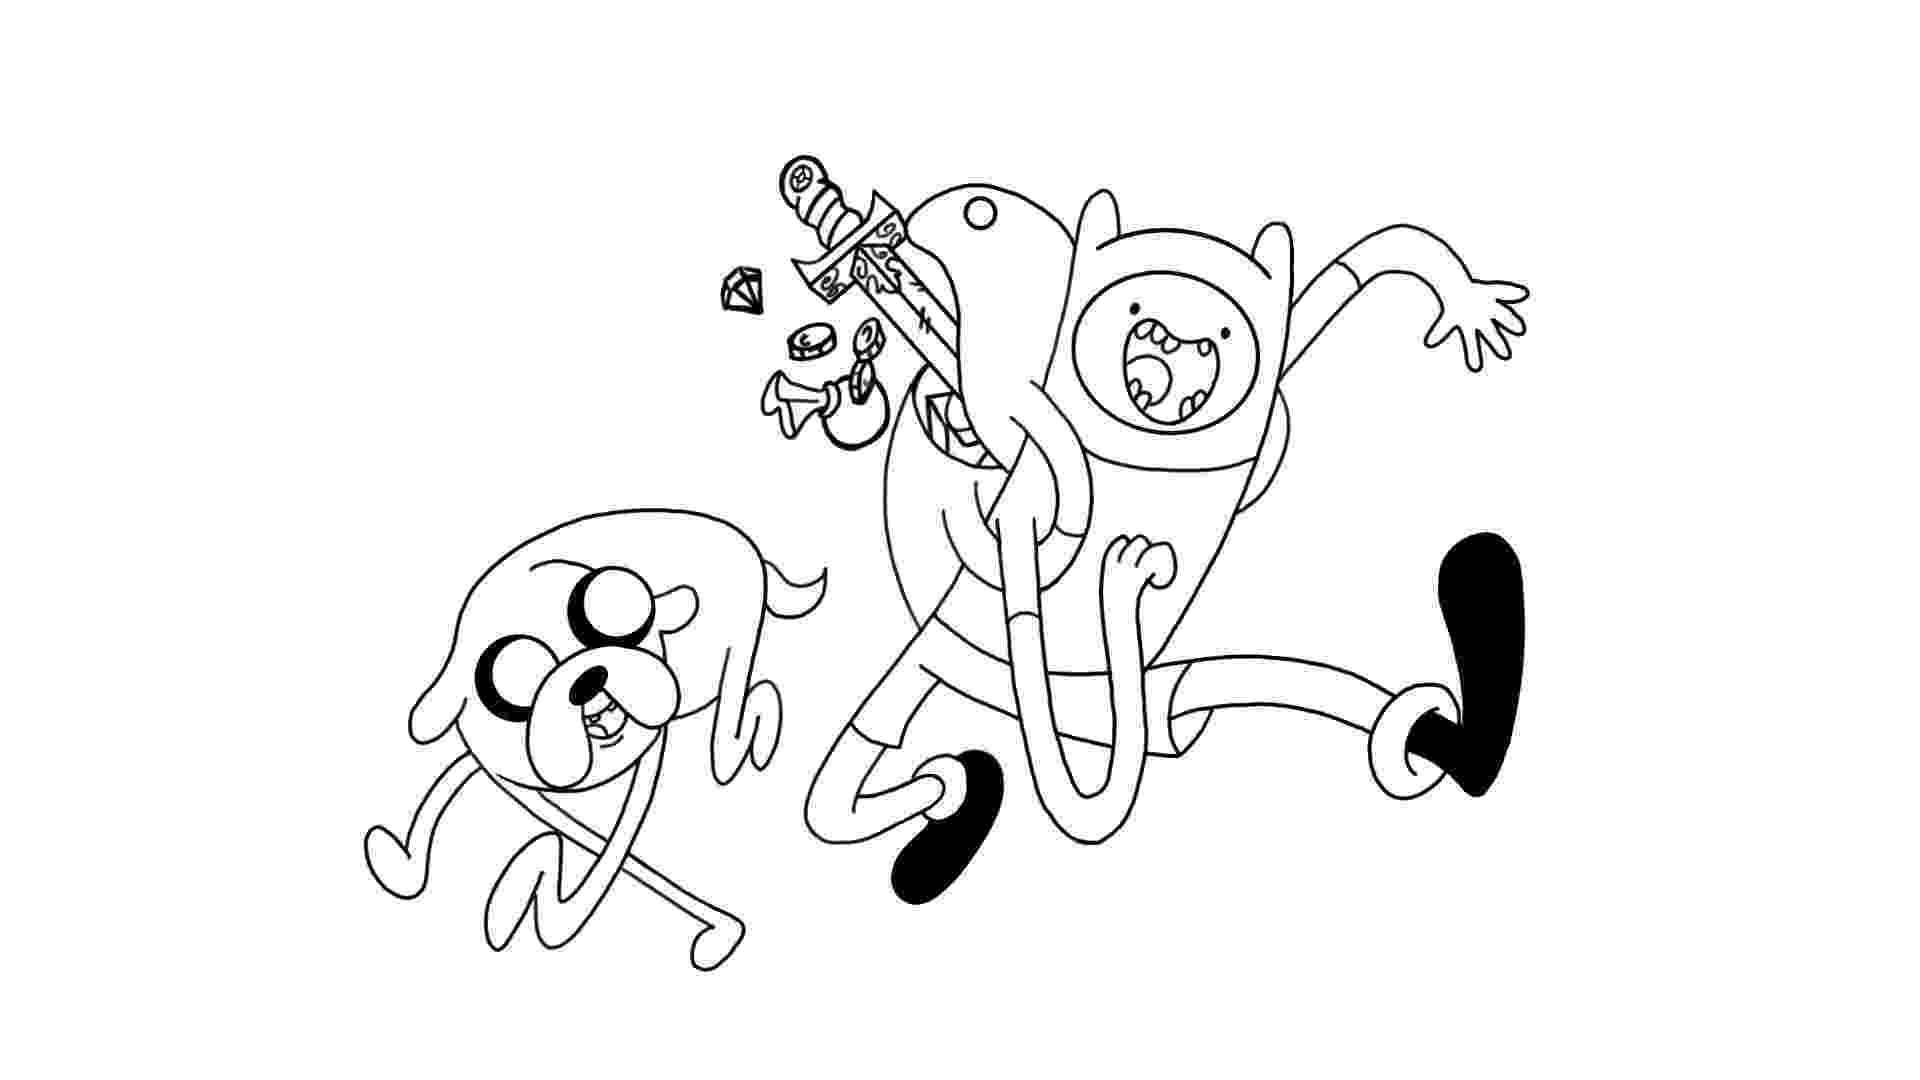 finn and jake coloring pages finn and jake coloring pages getcoloringpagescom and coloring jake pages finn